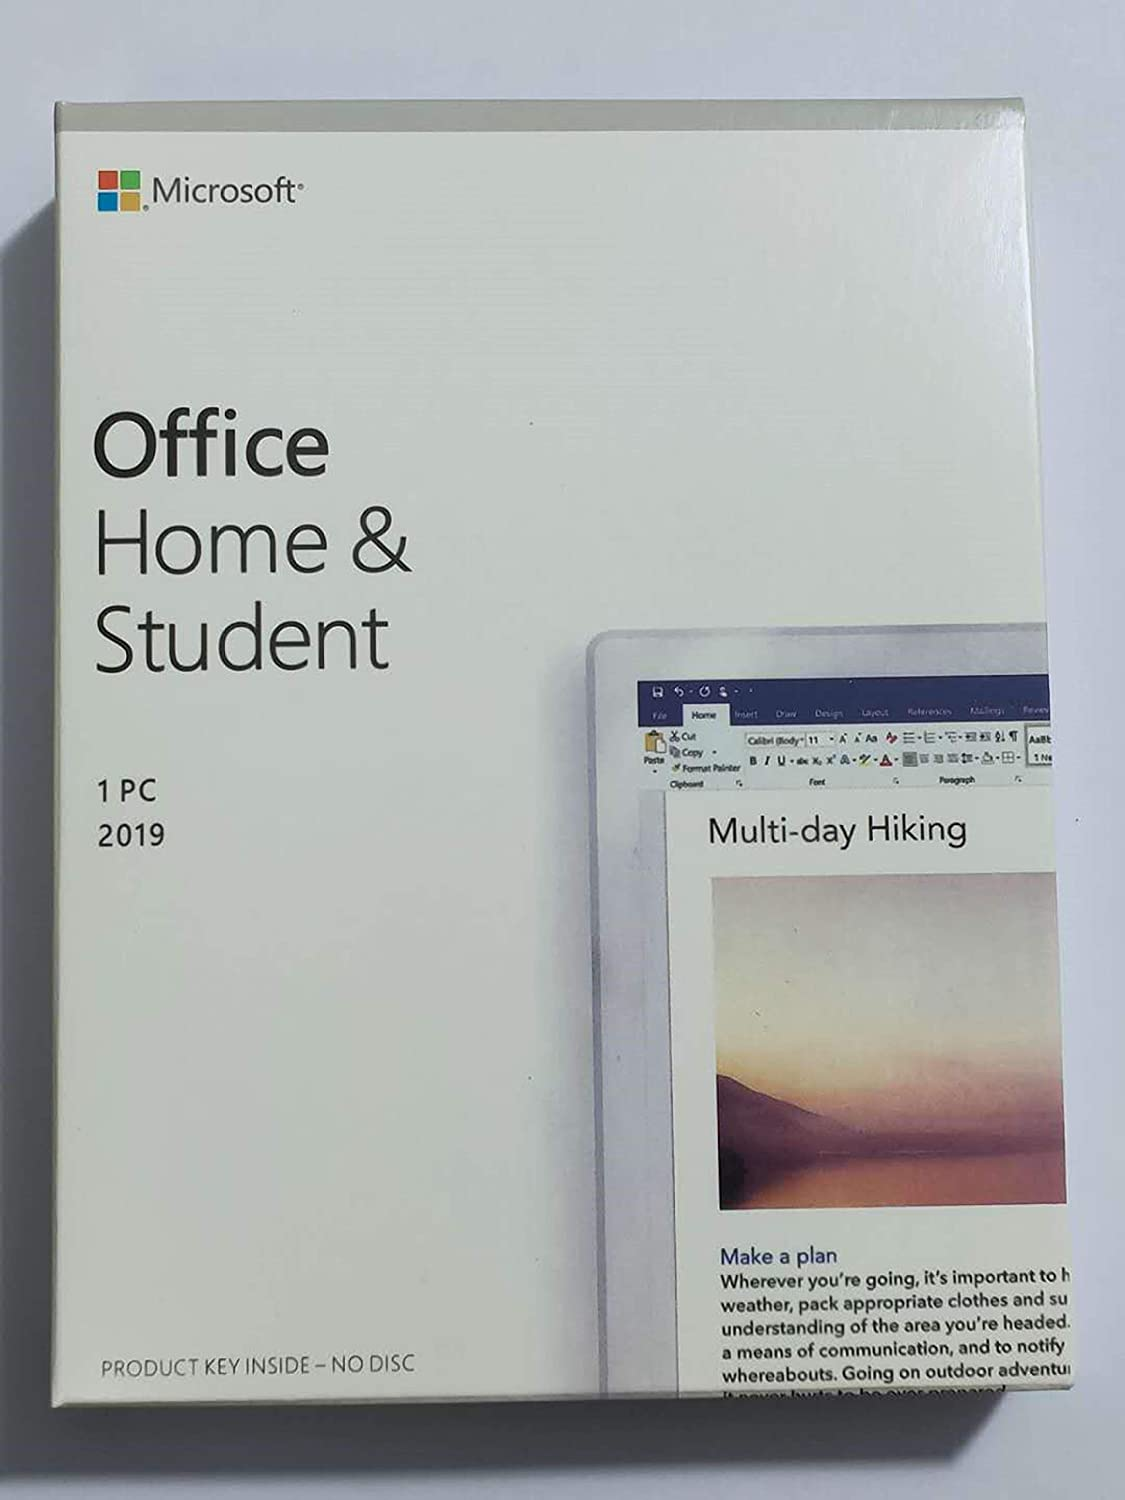 Office Home & Student 2019 Only PC Windows | New | English | Lifetime license